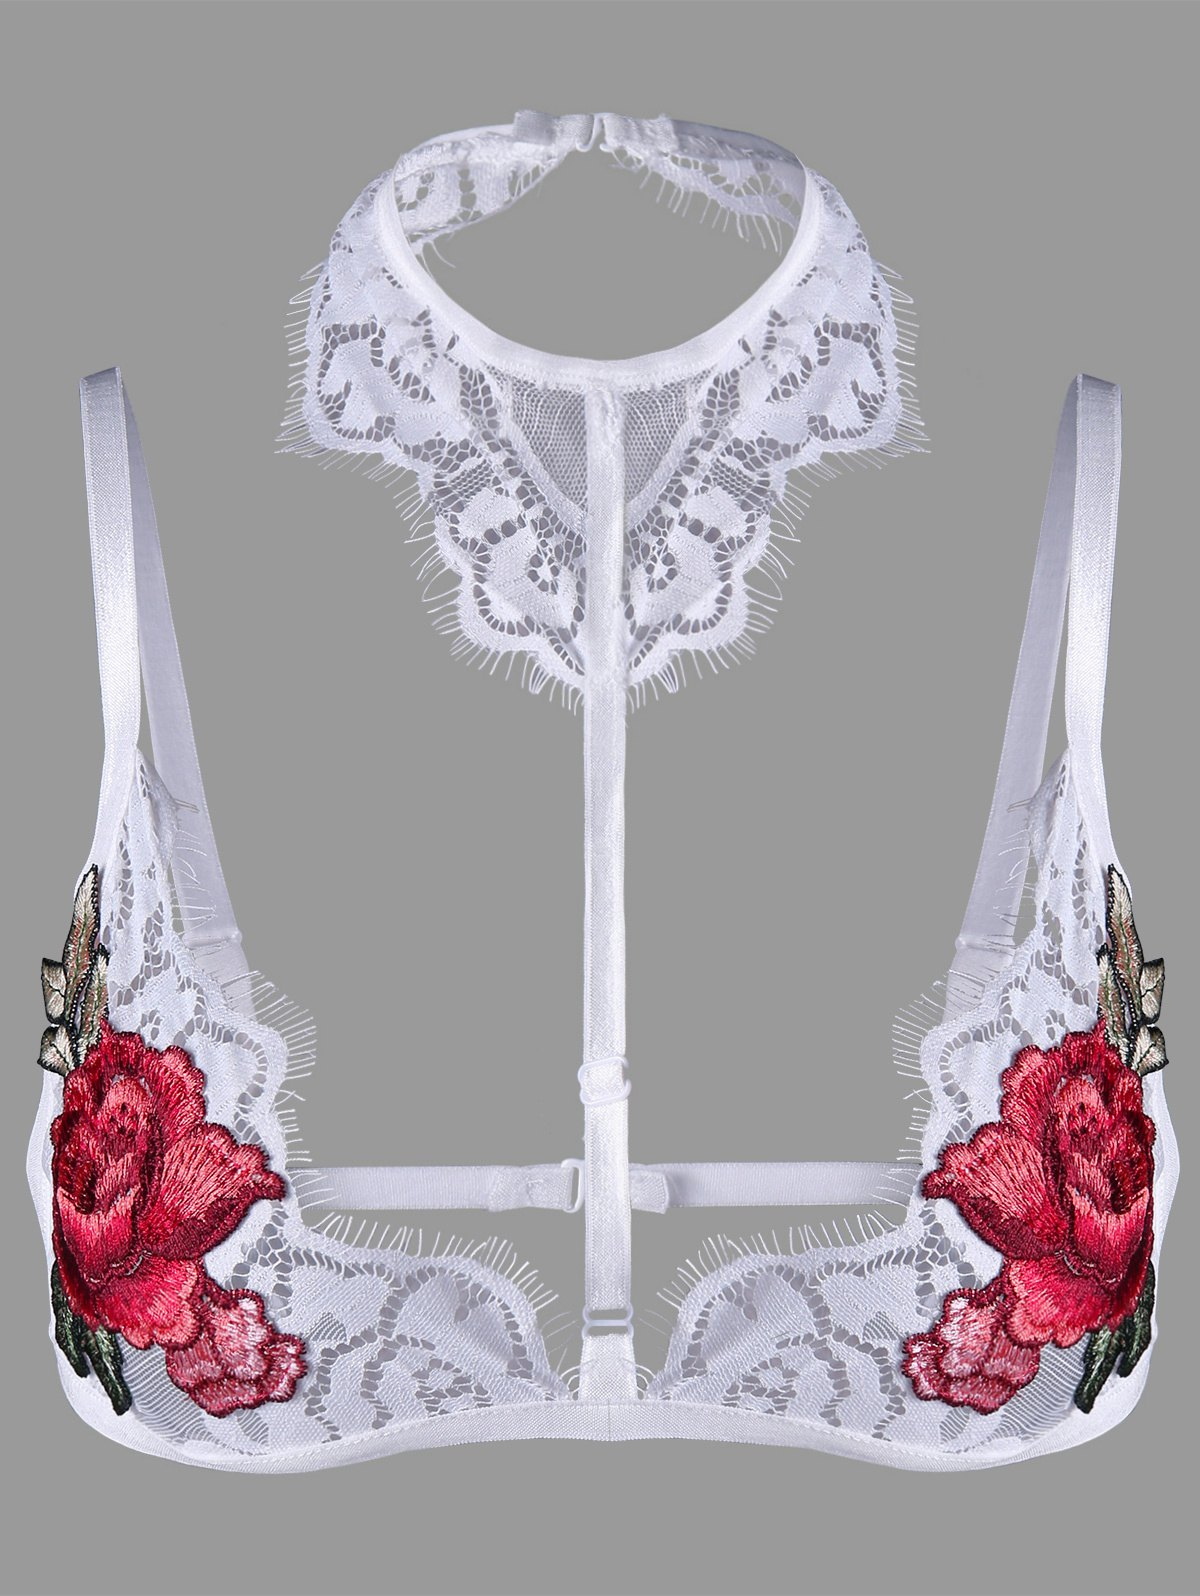 Lace Flower Embroidered Choker Bralette motul 300 v power 5w40 2л